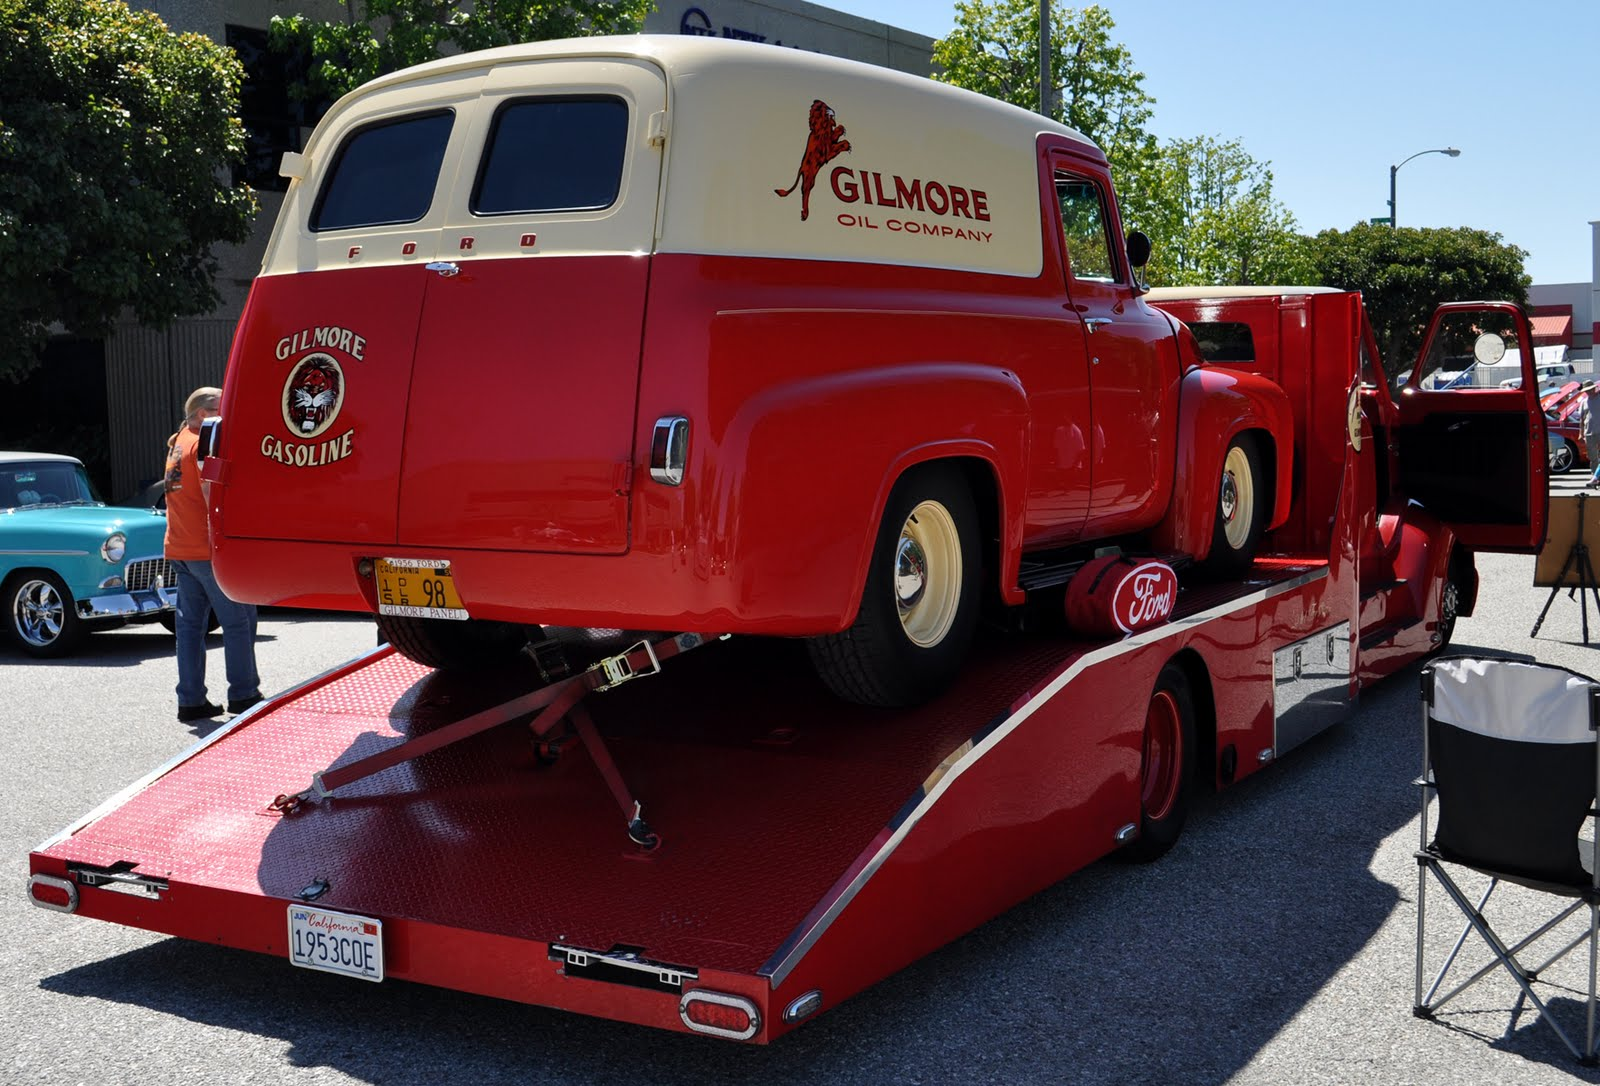 The 53 COE crew cab in Gilmore colors has a matching panel truck